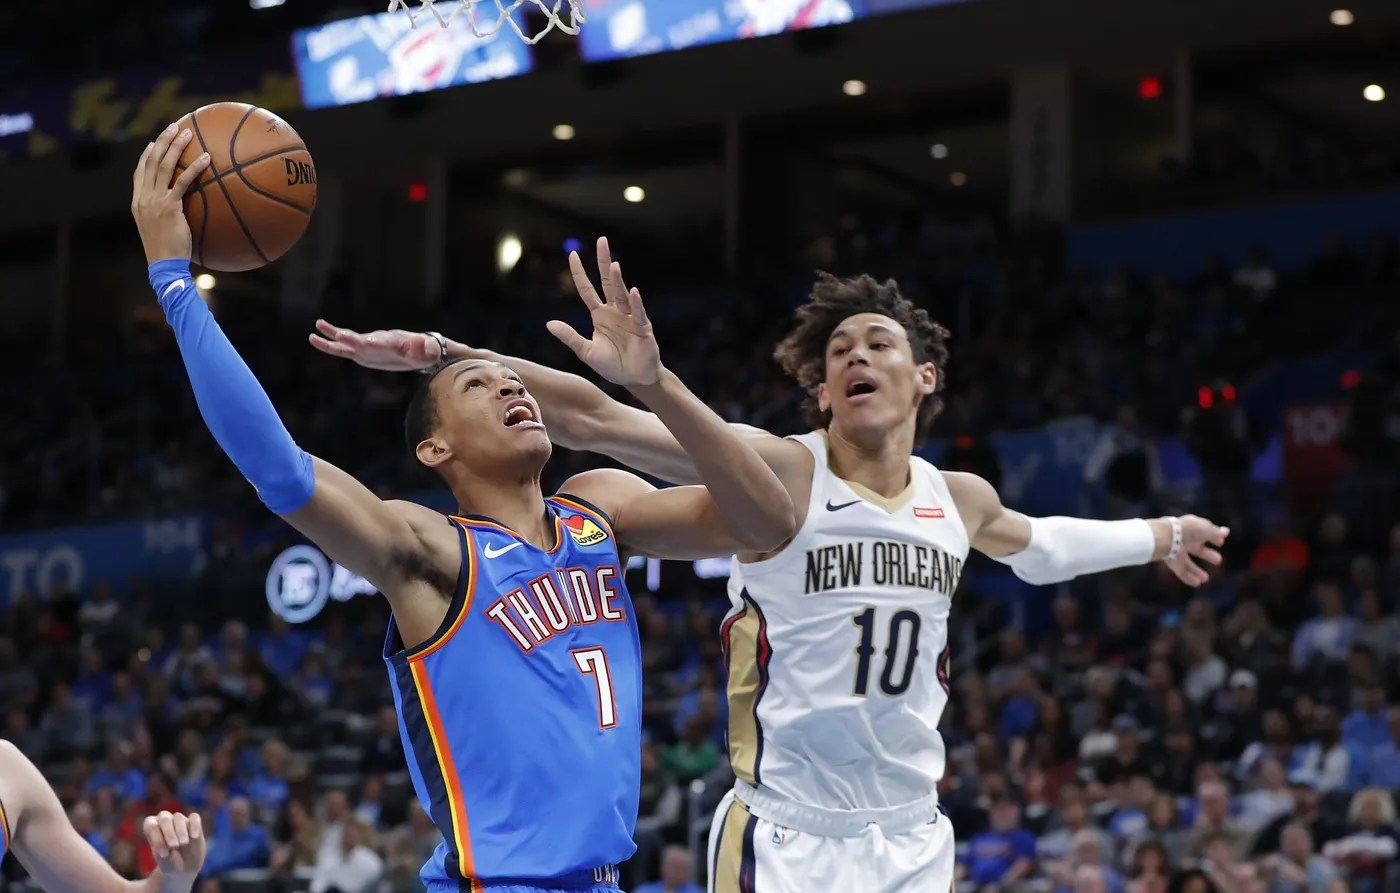 Nov 2, 2019; Oklahoma City, OK, USA; Oklahoma City Thunder forward Darius Bazley (7) shoots the ball as New Orleans Pelicans center Jaxson Hayes (10) defends the shot during the second half at Chesapeake Energy Arena. Oklahoma City won 115-104. Mandatory Credit: Alonzo Adams-USA TODAY Sports